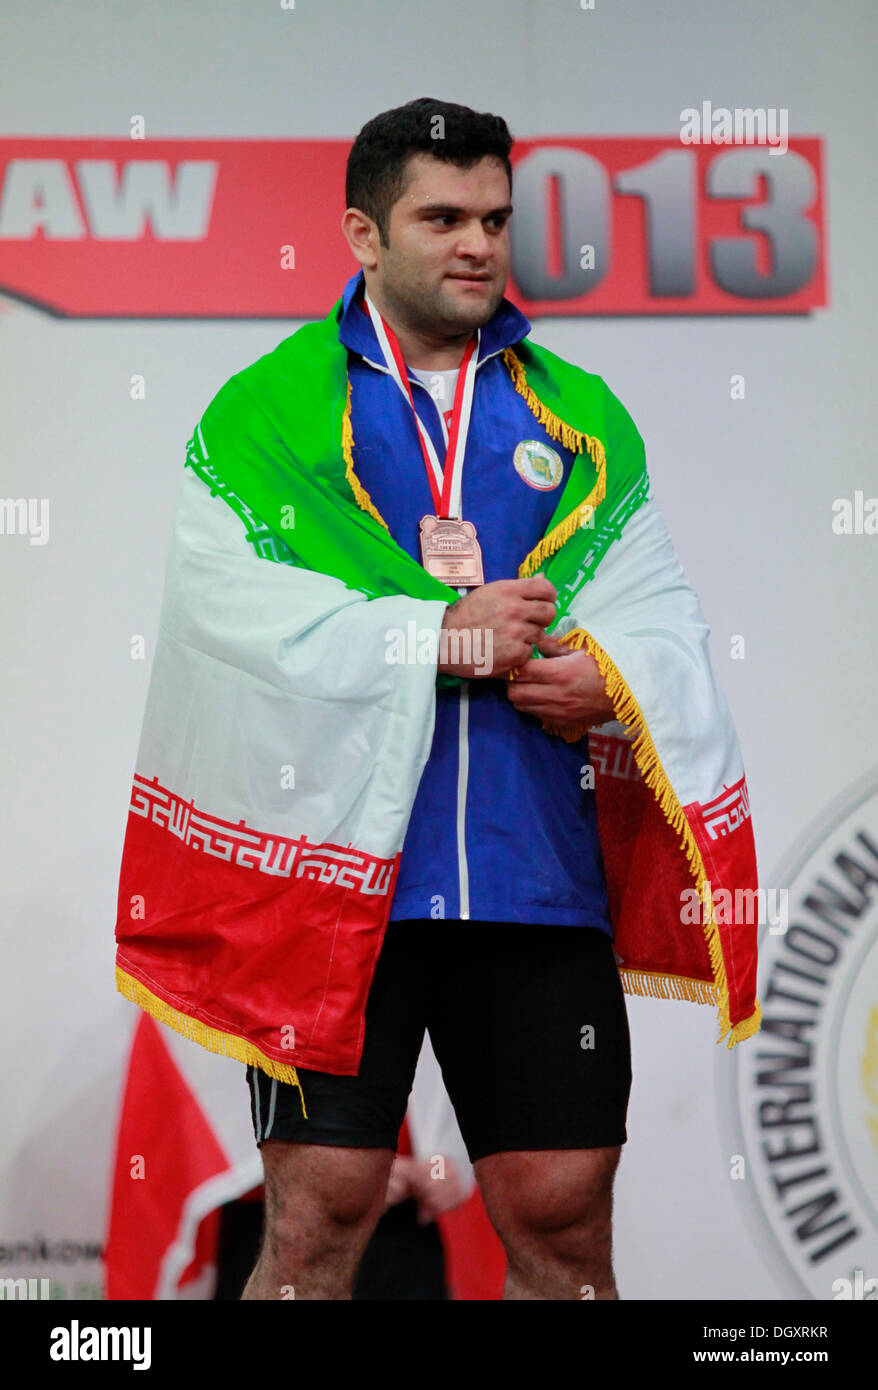 Wroclaw, Poland. 27th Oct, 2013. World Championships (IRI) won the bronze in cjerk during Men's 105 KG Group A Final at 2013 IWF World Weightlifting Championships in Wroclaw, Poland, on Sunday, October 27, 2013. Credit:  Piotr Zajac/Alamy Live News - Stock Image